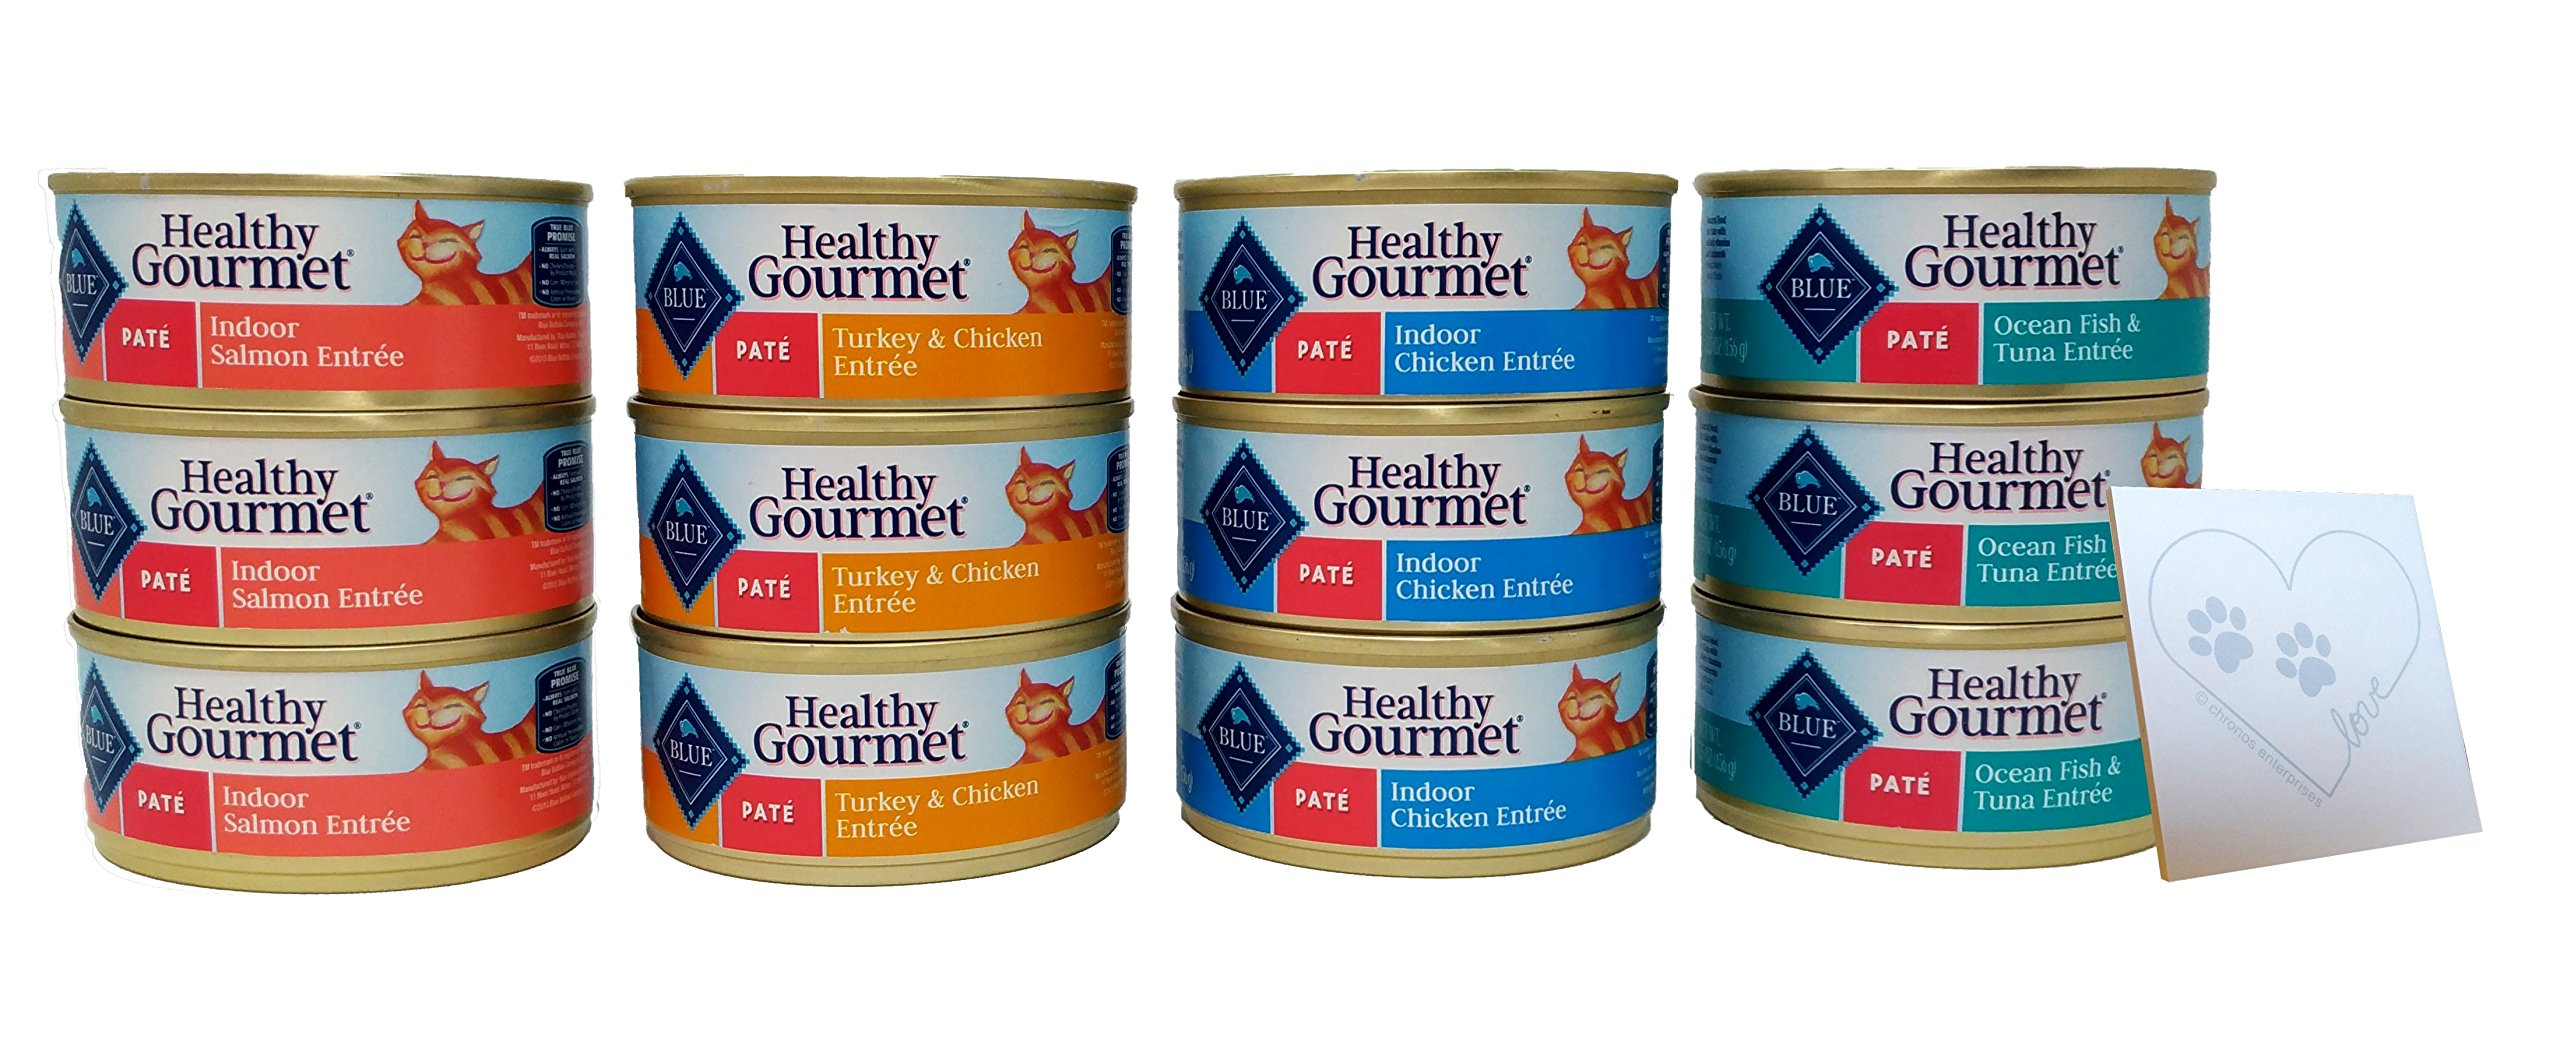 Blue Buffalo Healthy Gourmet Pate Wet Cat Food Variety Pack - 4 Flavors: Turkey & Chicken, Ocean Fish & Tuna Entree, Salmon, and Chicken. (12 Total Cans, 5.5 oz Each) by Blue Buffalo Healthy Gourmet